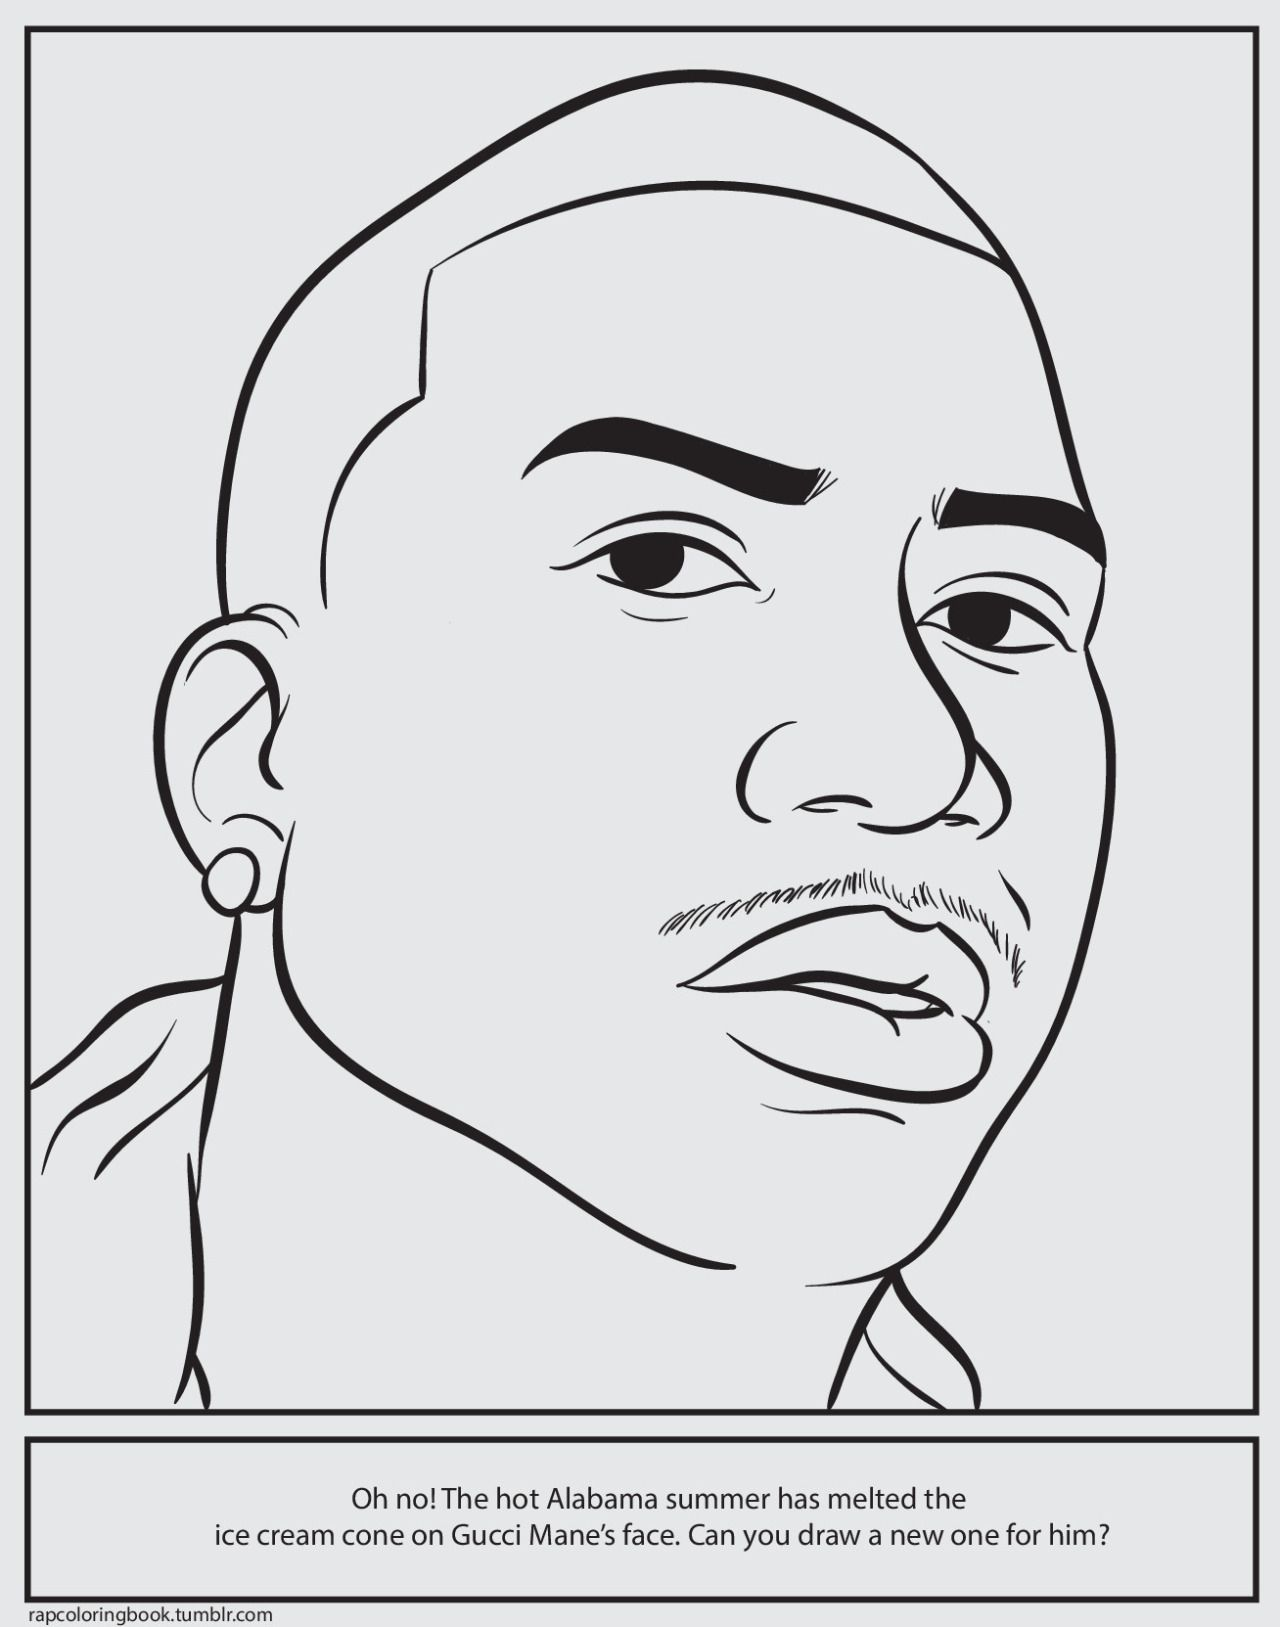 Bun B S Jumbo Coloring And Rap Activity Tumblr Click Here To Download The Gucci Mane Activity Gucci Mane Gucci Mane Tattoo Music Coloring